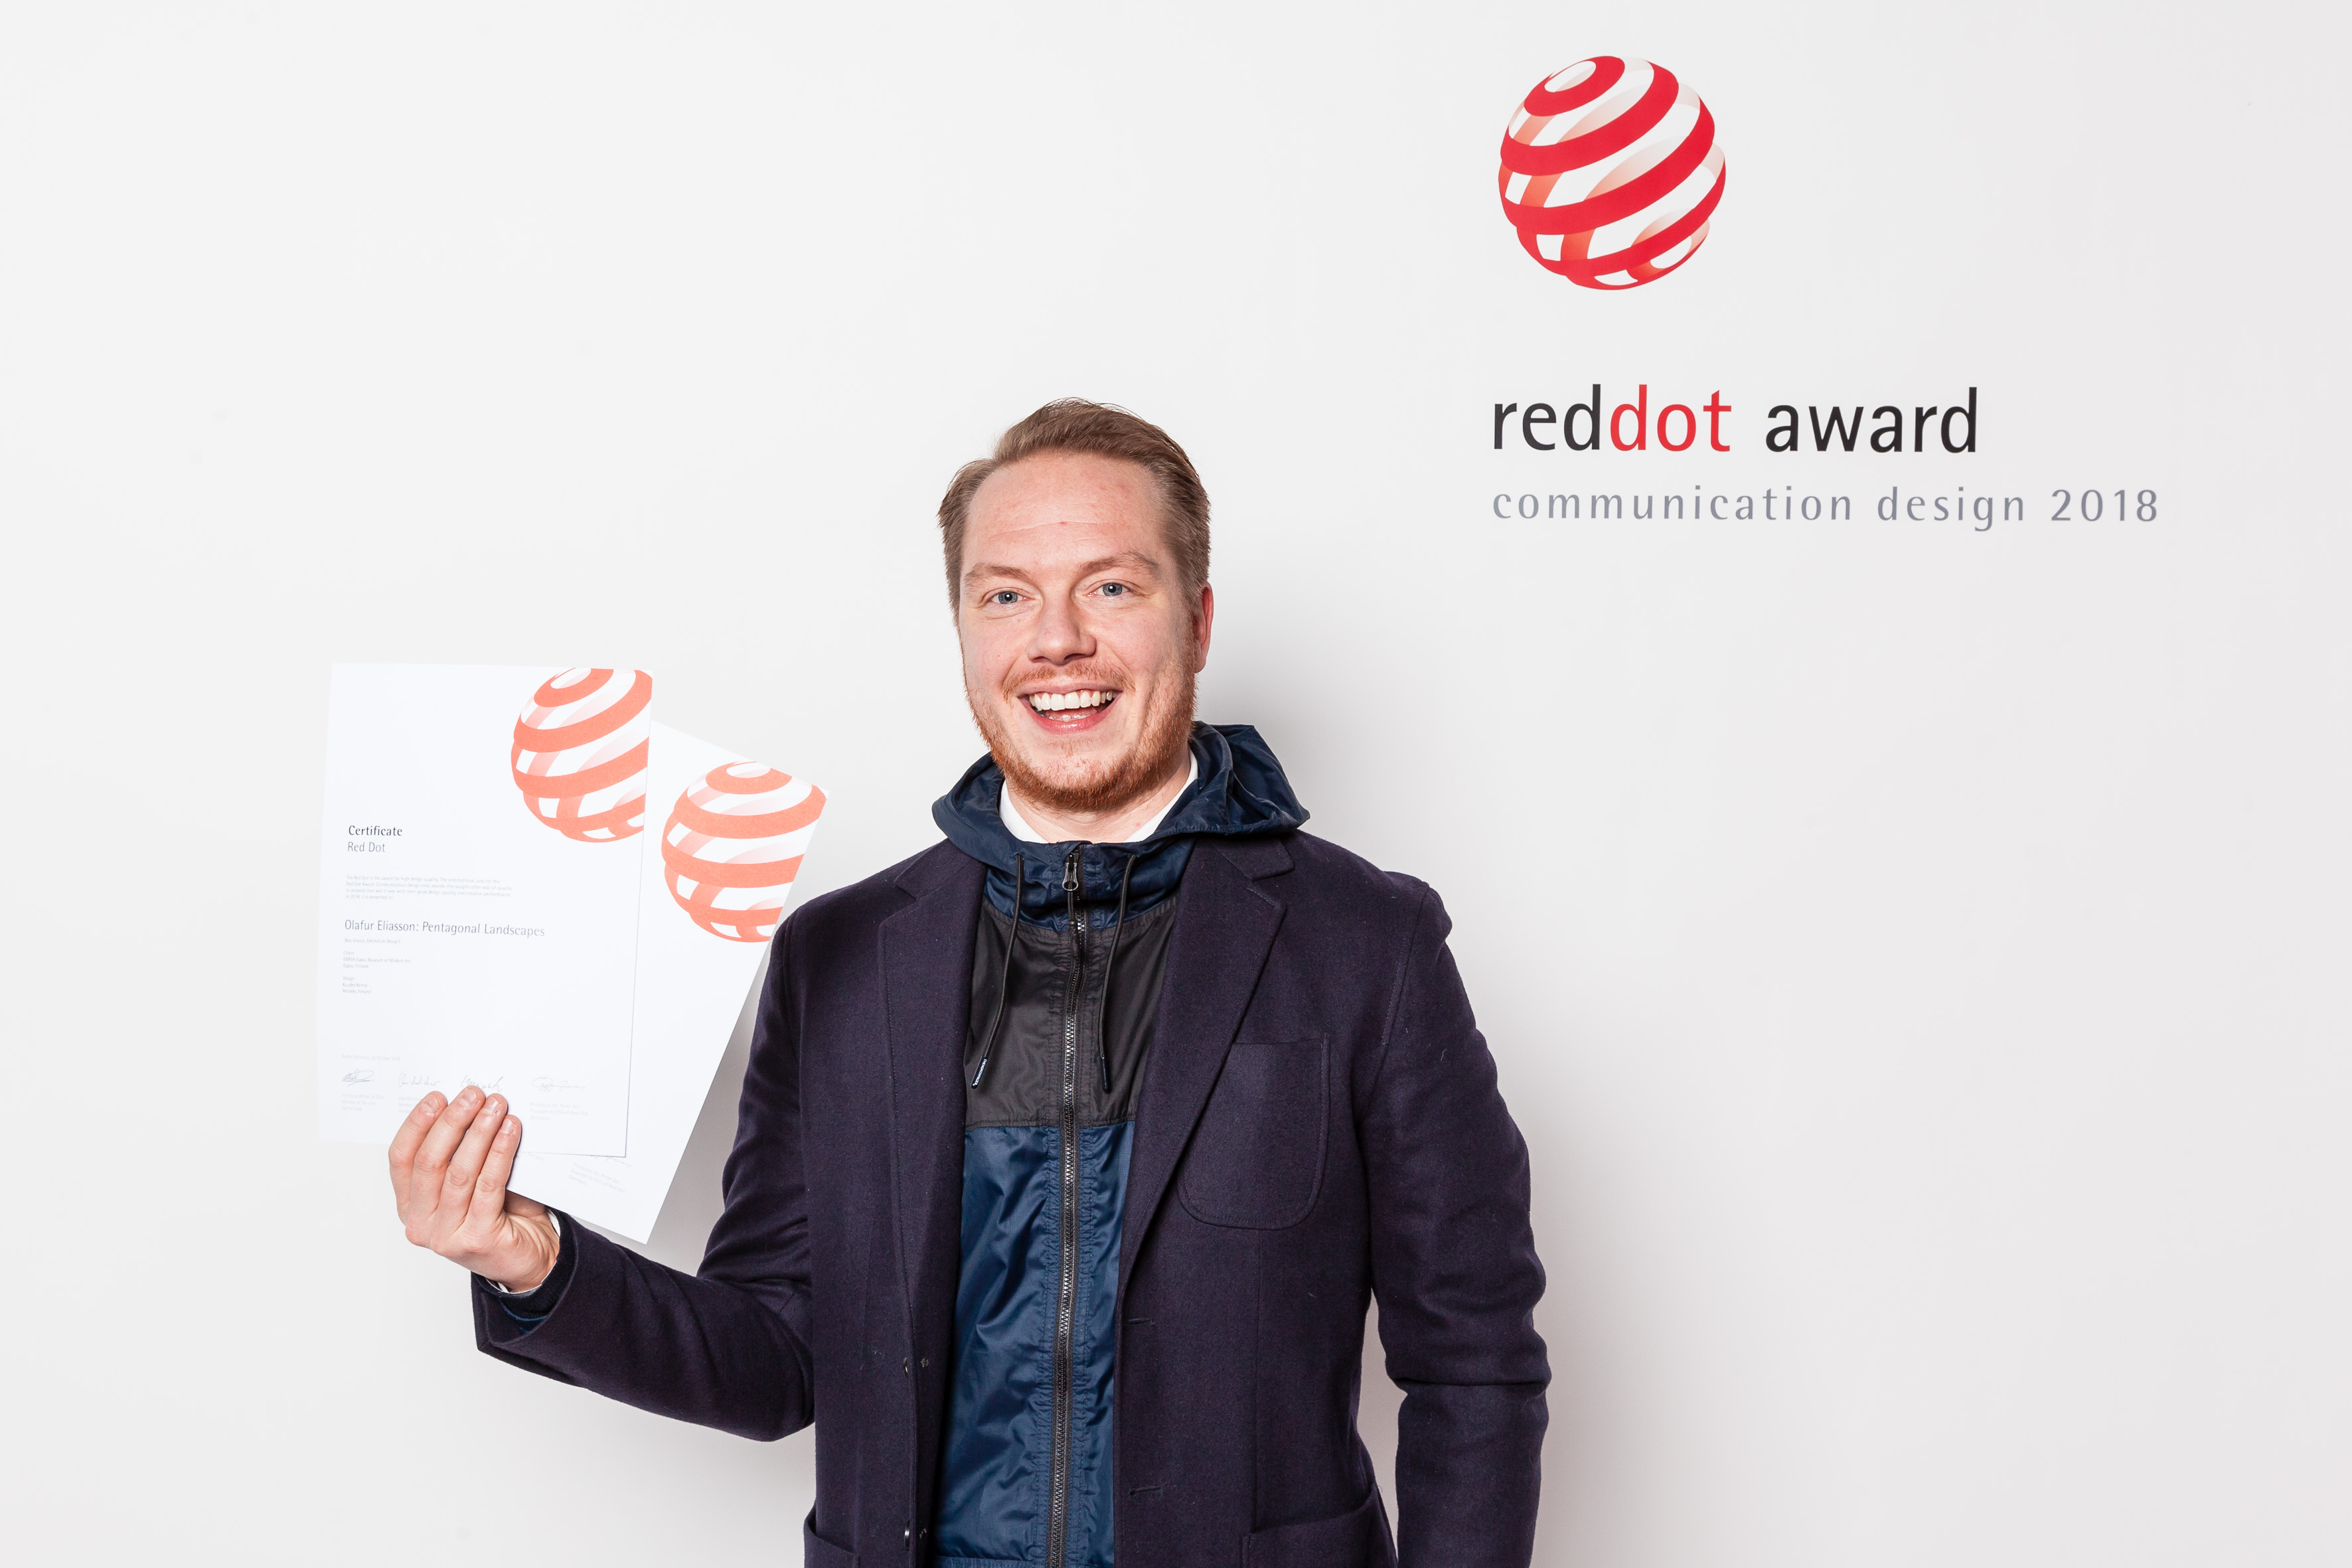 Two Kuudes Made Identities Awarded The Red Dot The Prize For The Best International Design Kuudes